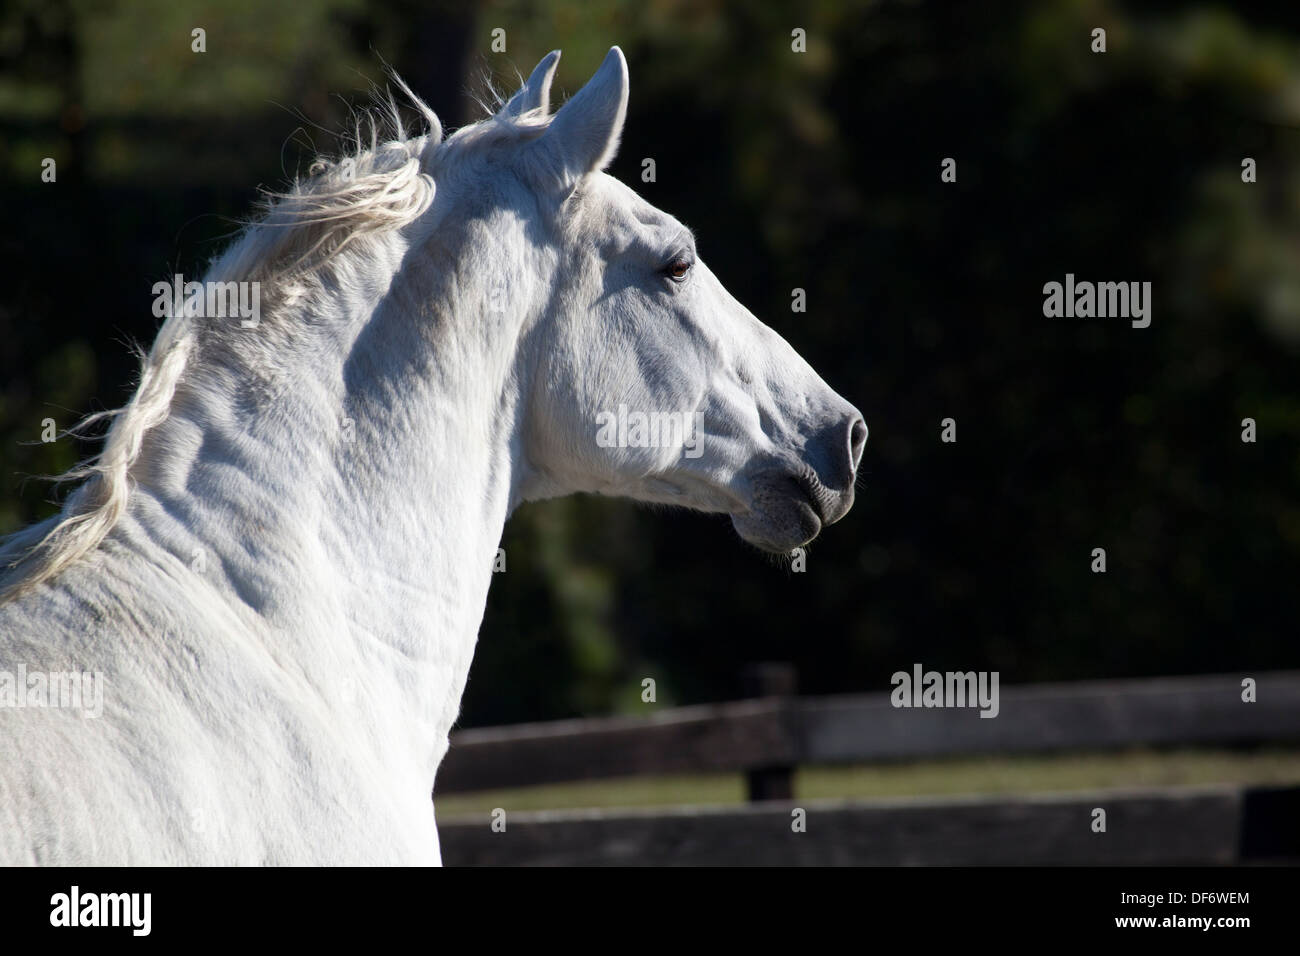 Andalusian horse Stock Photo